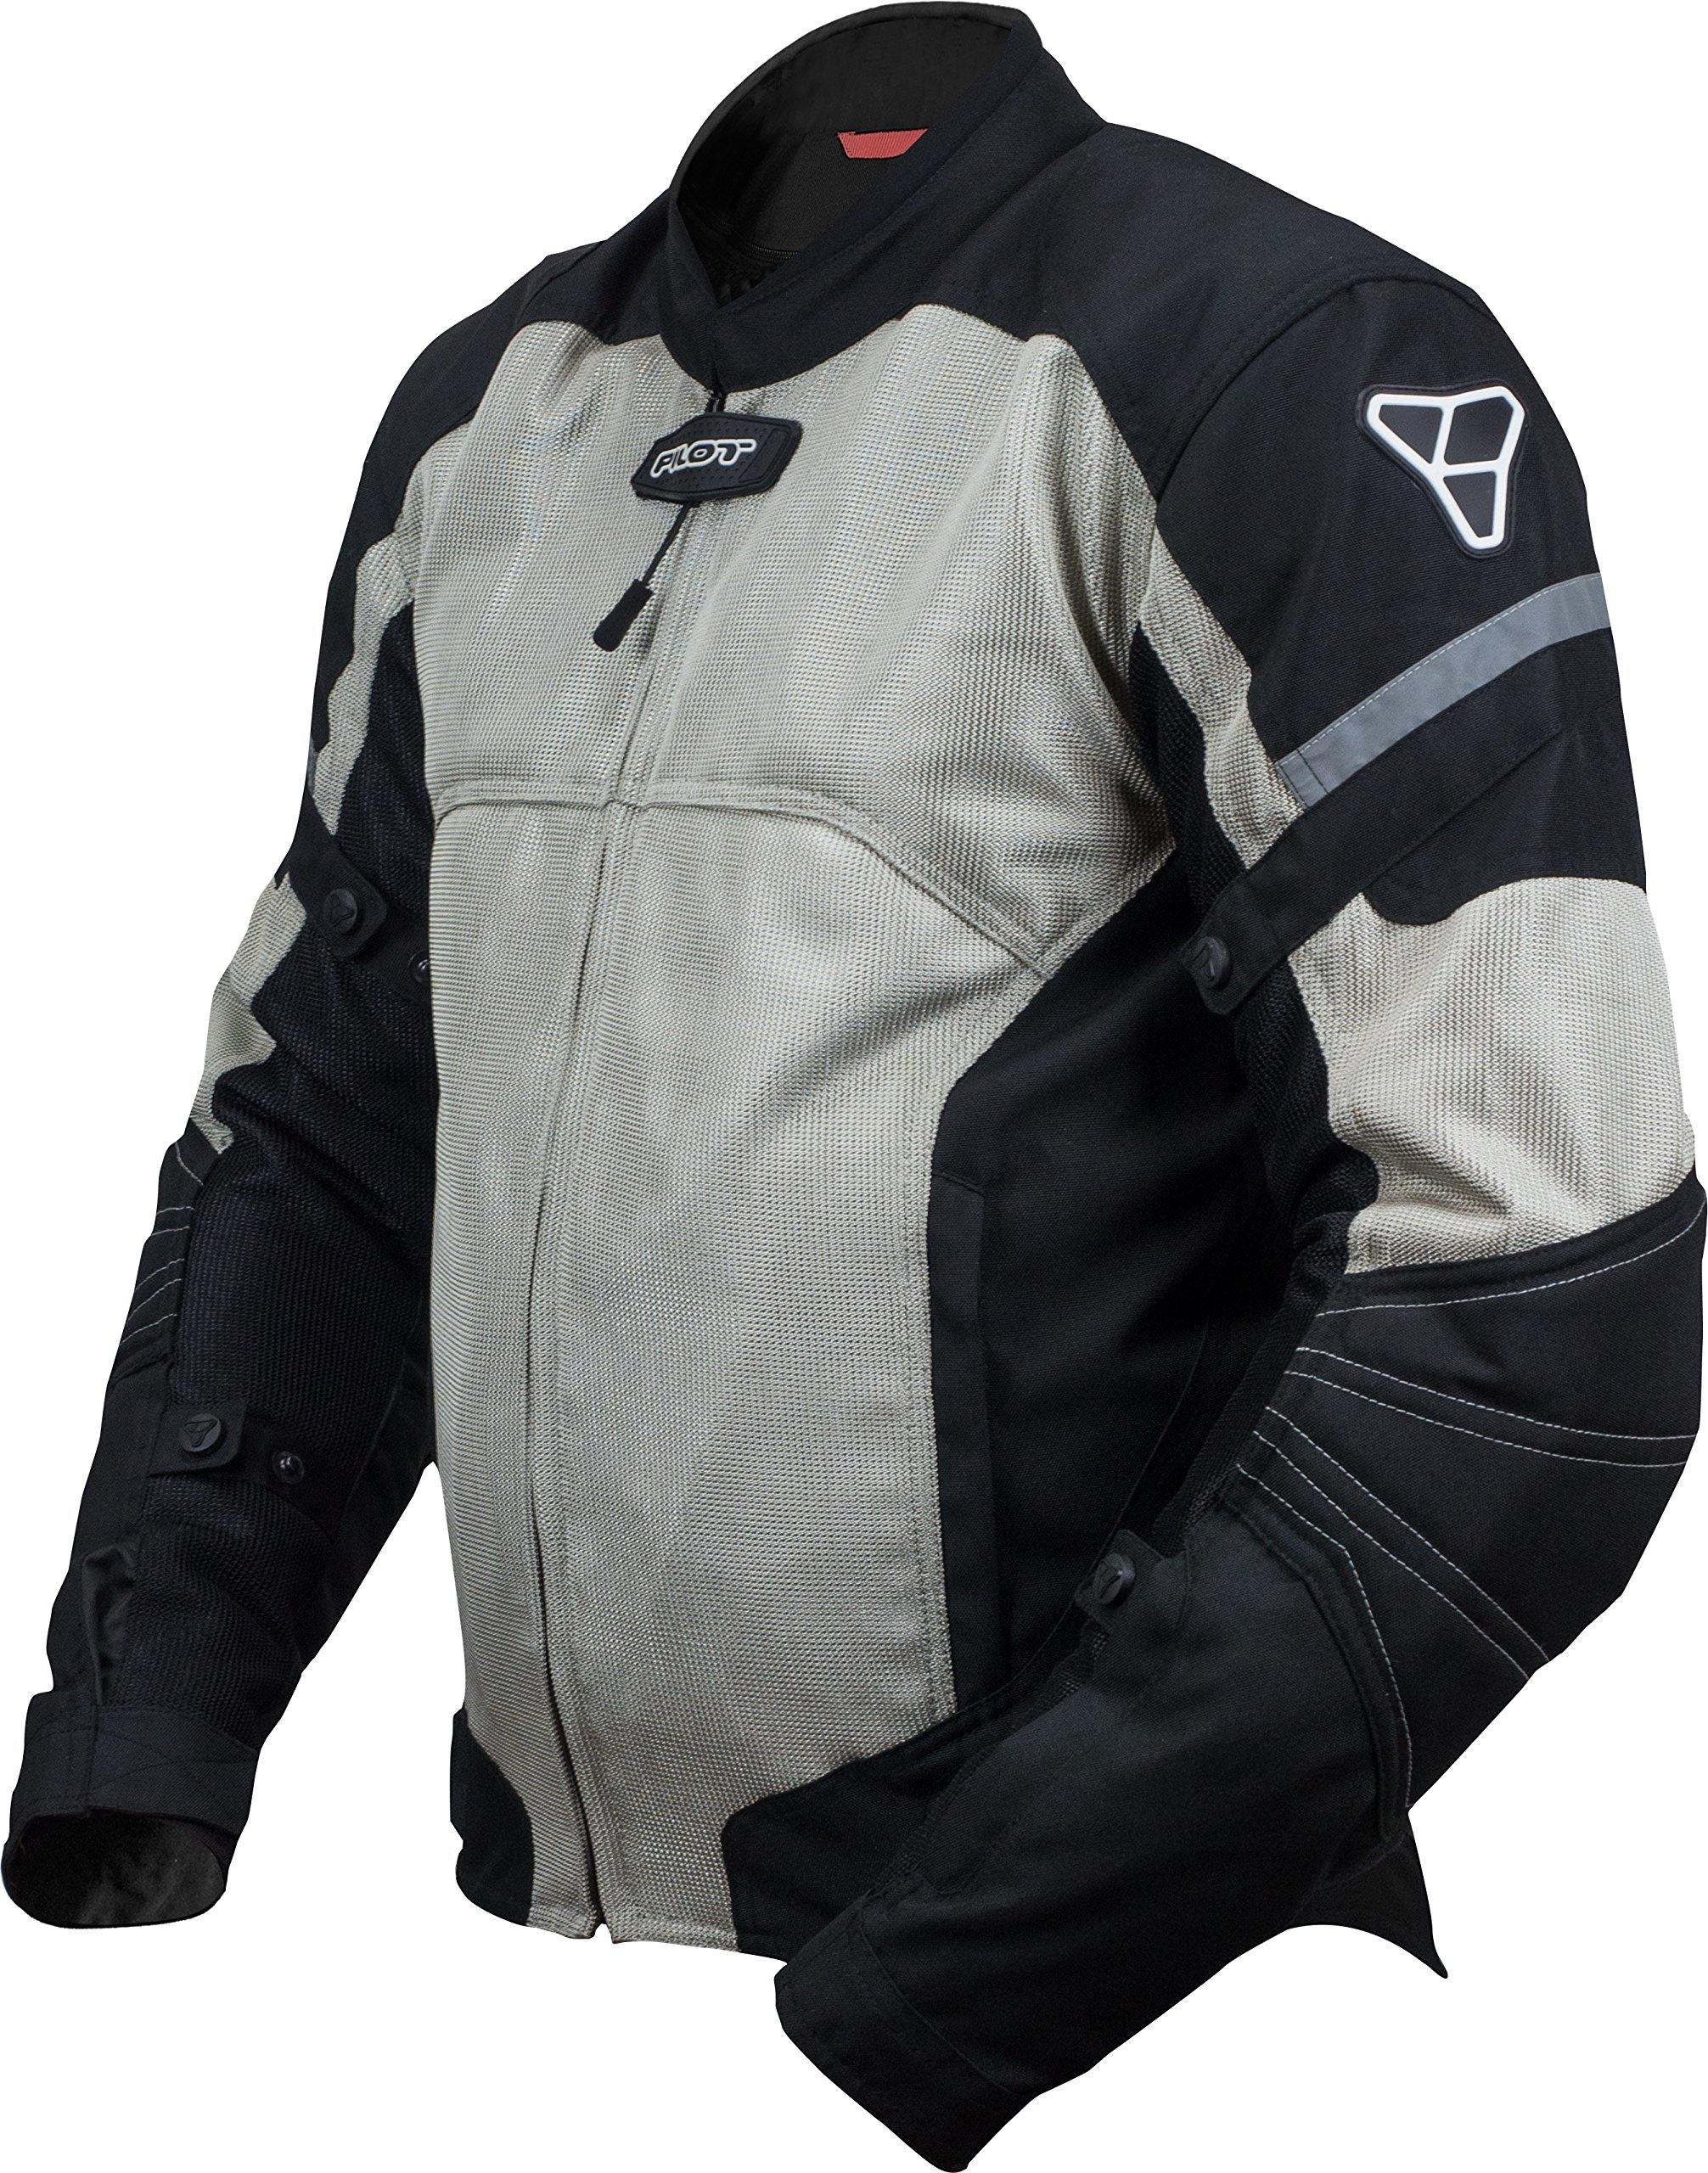 Pilot Motosport Men's Direct Air Mesh Motorcycle Jacket (V3) (Silver, Small)